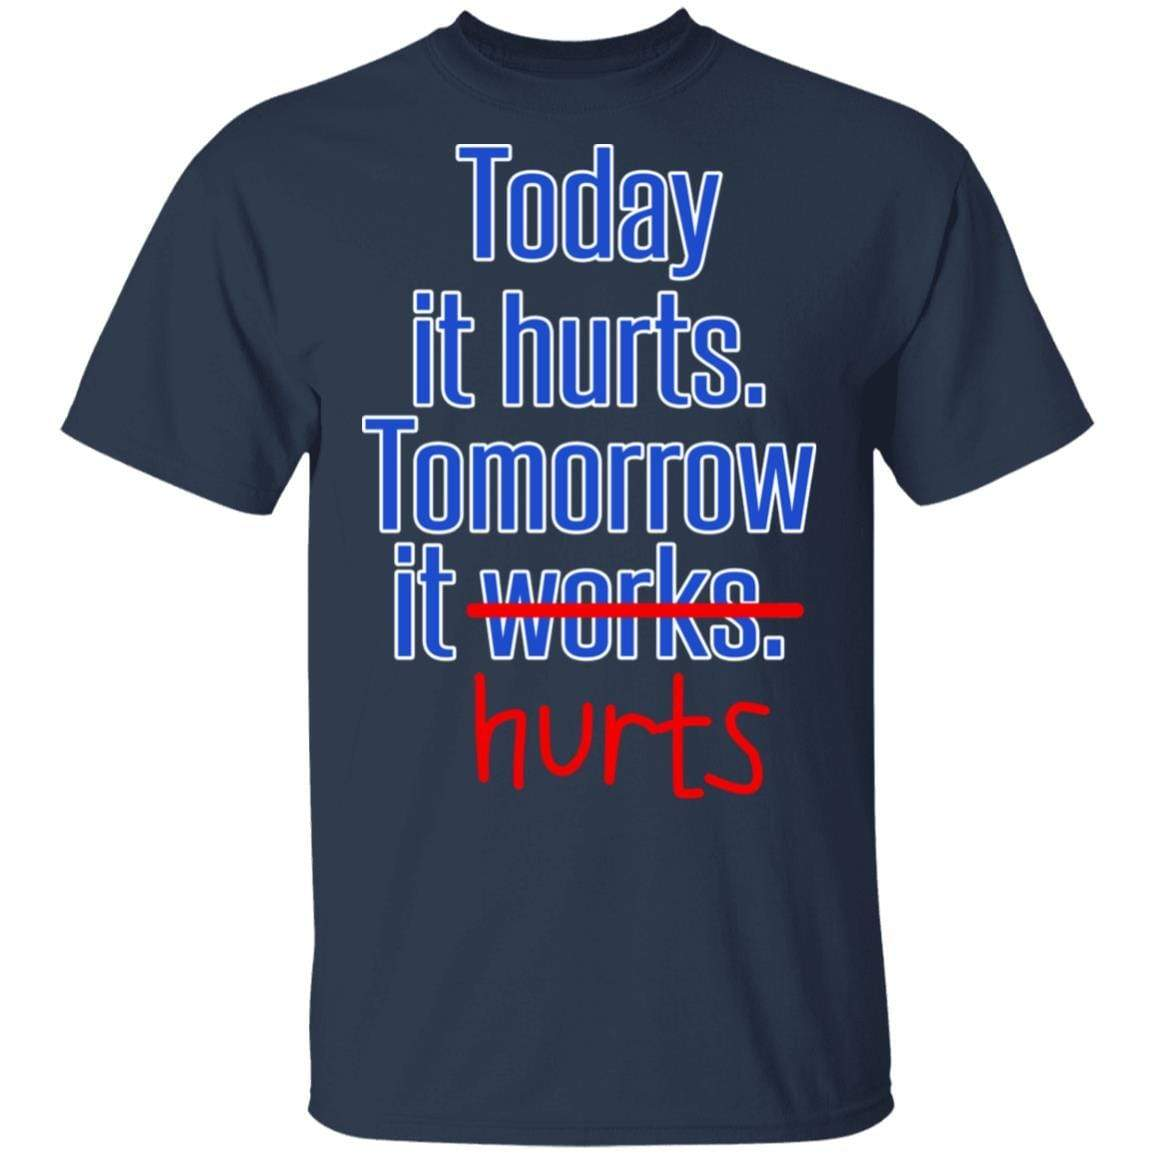 Today Is Hurts Tomorrow It Hurts T-Shirts, Hoodies 1049-9966-88445014-48248 - Tee Ript